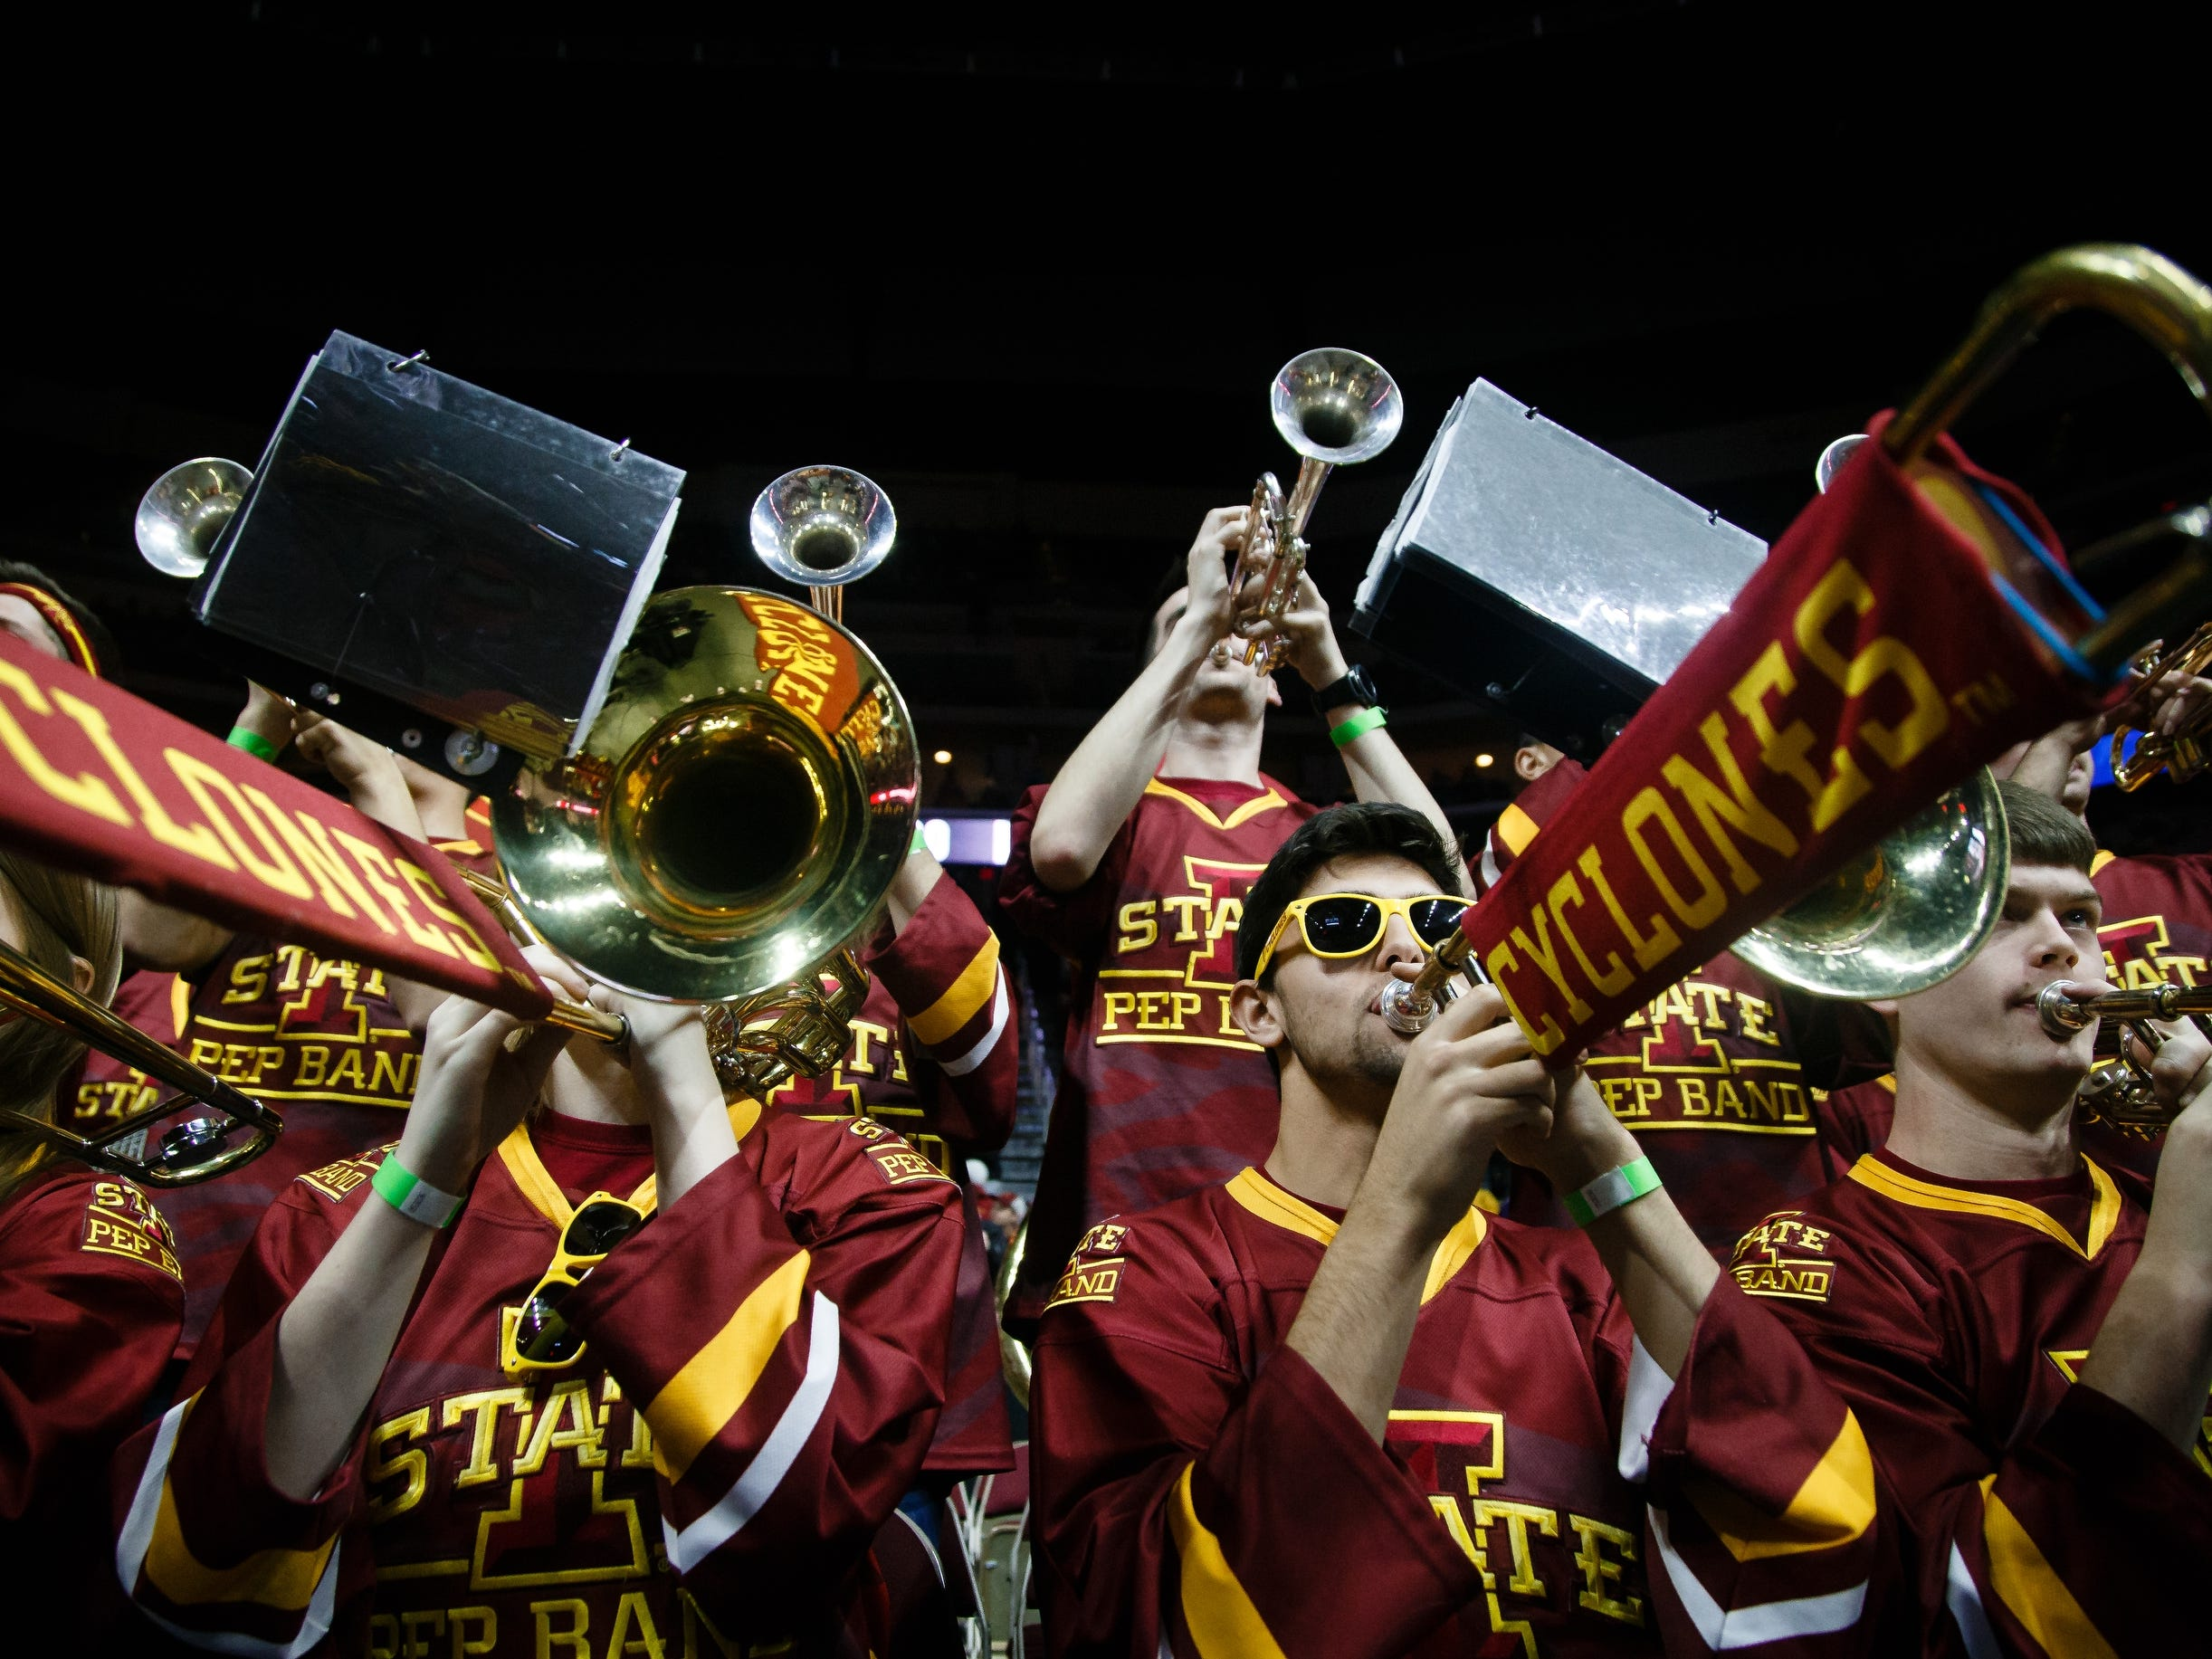 The Iowa State band plays during their basketball game against Drake at the Hy-Vee Classic on Saturday, Dec. 15, 2018, in Des Moines. Iowa State takes a 36-32 lead into the half.